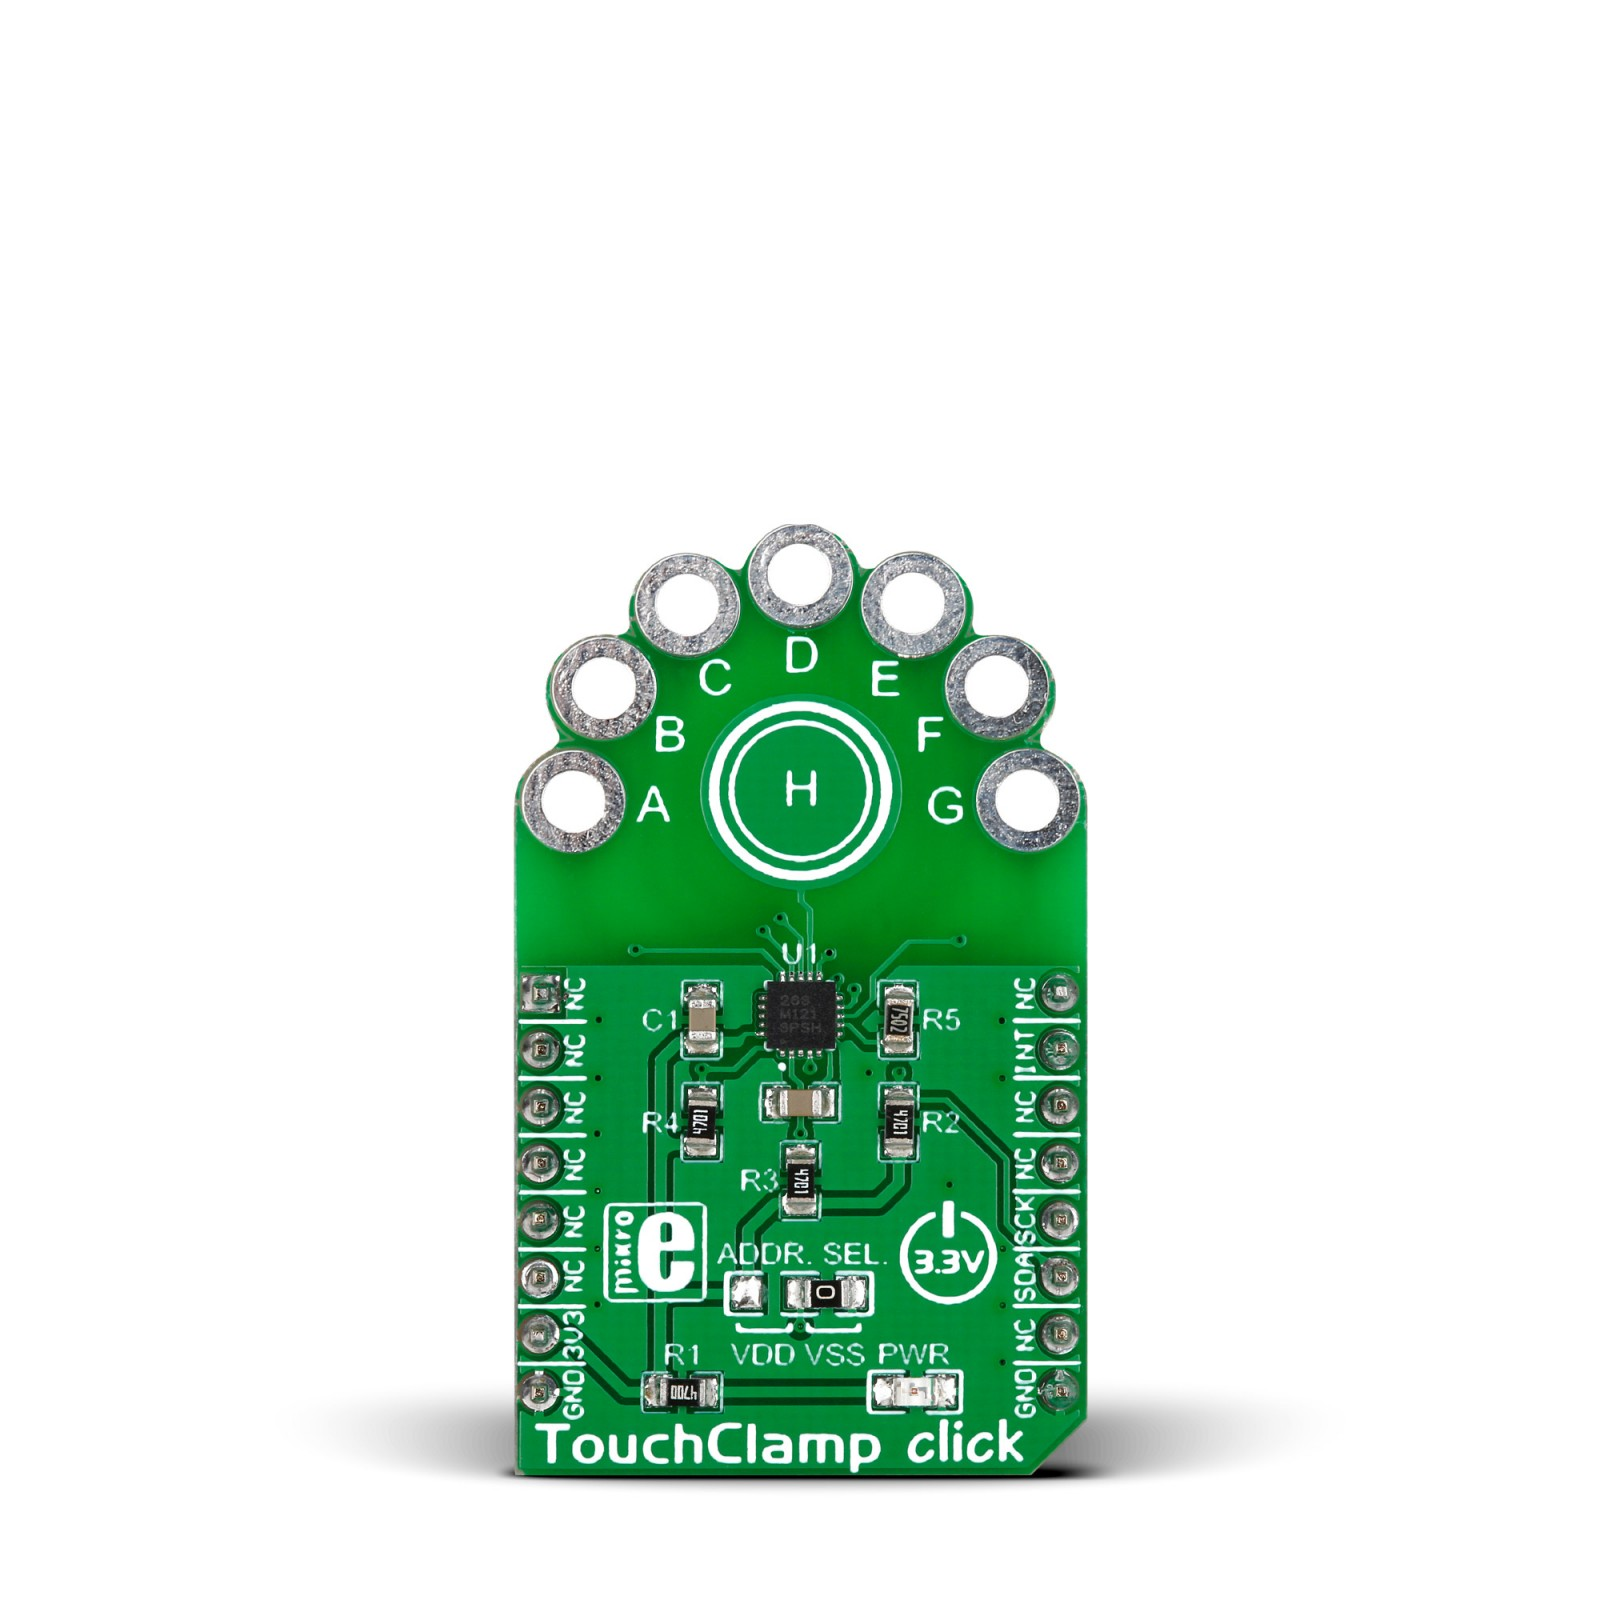 touchclamp click \u2013 add on board with mpr12 proximity capacitiveview larger mikroelektronikas touchclamp click front tap to expand